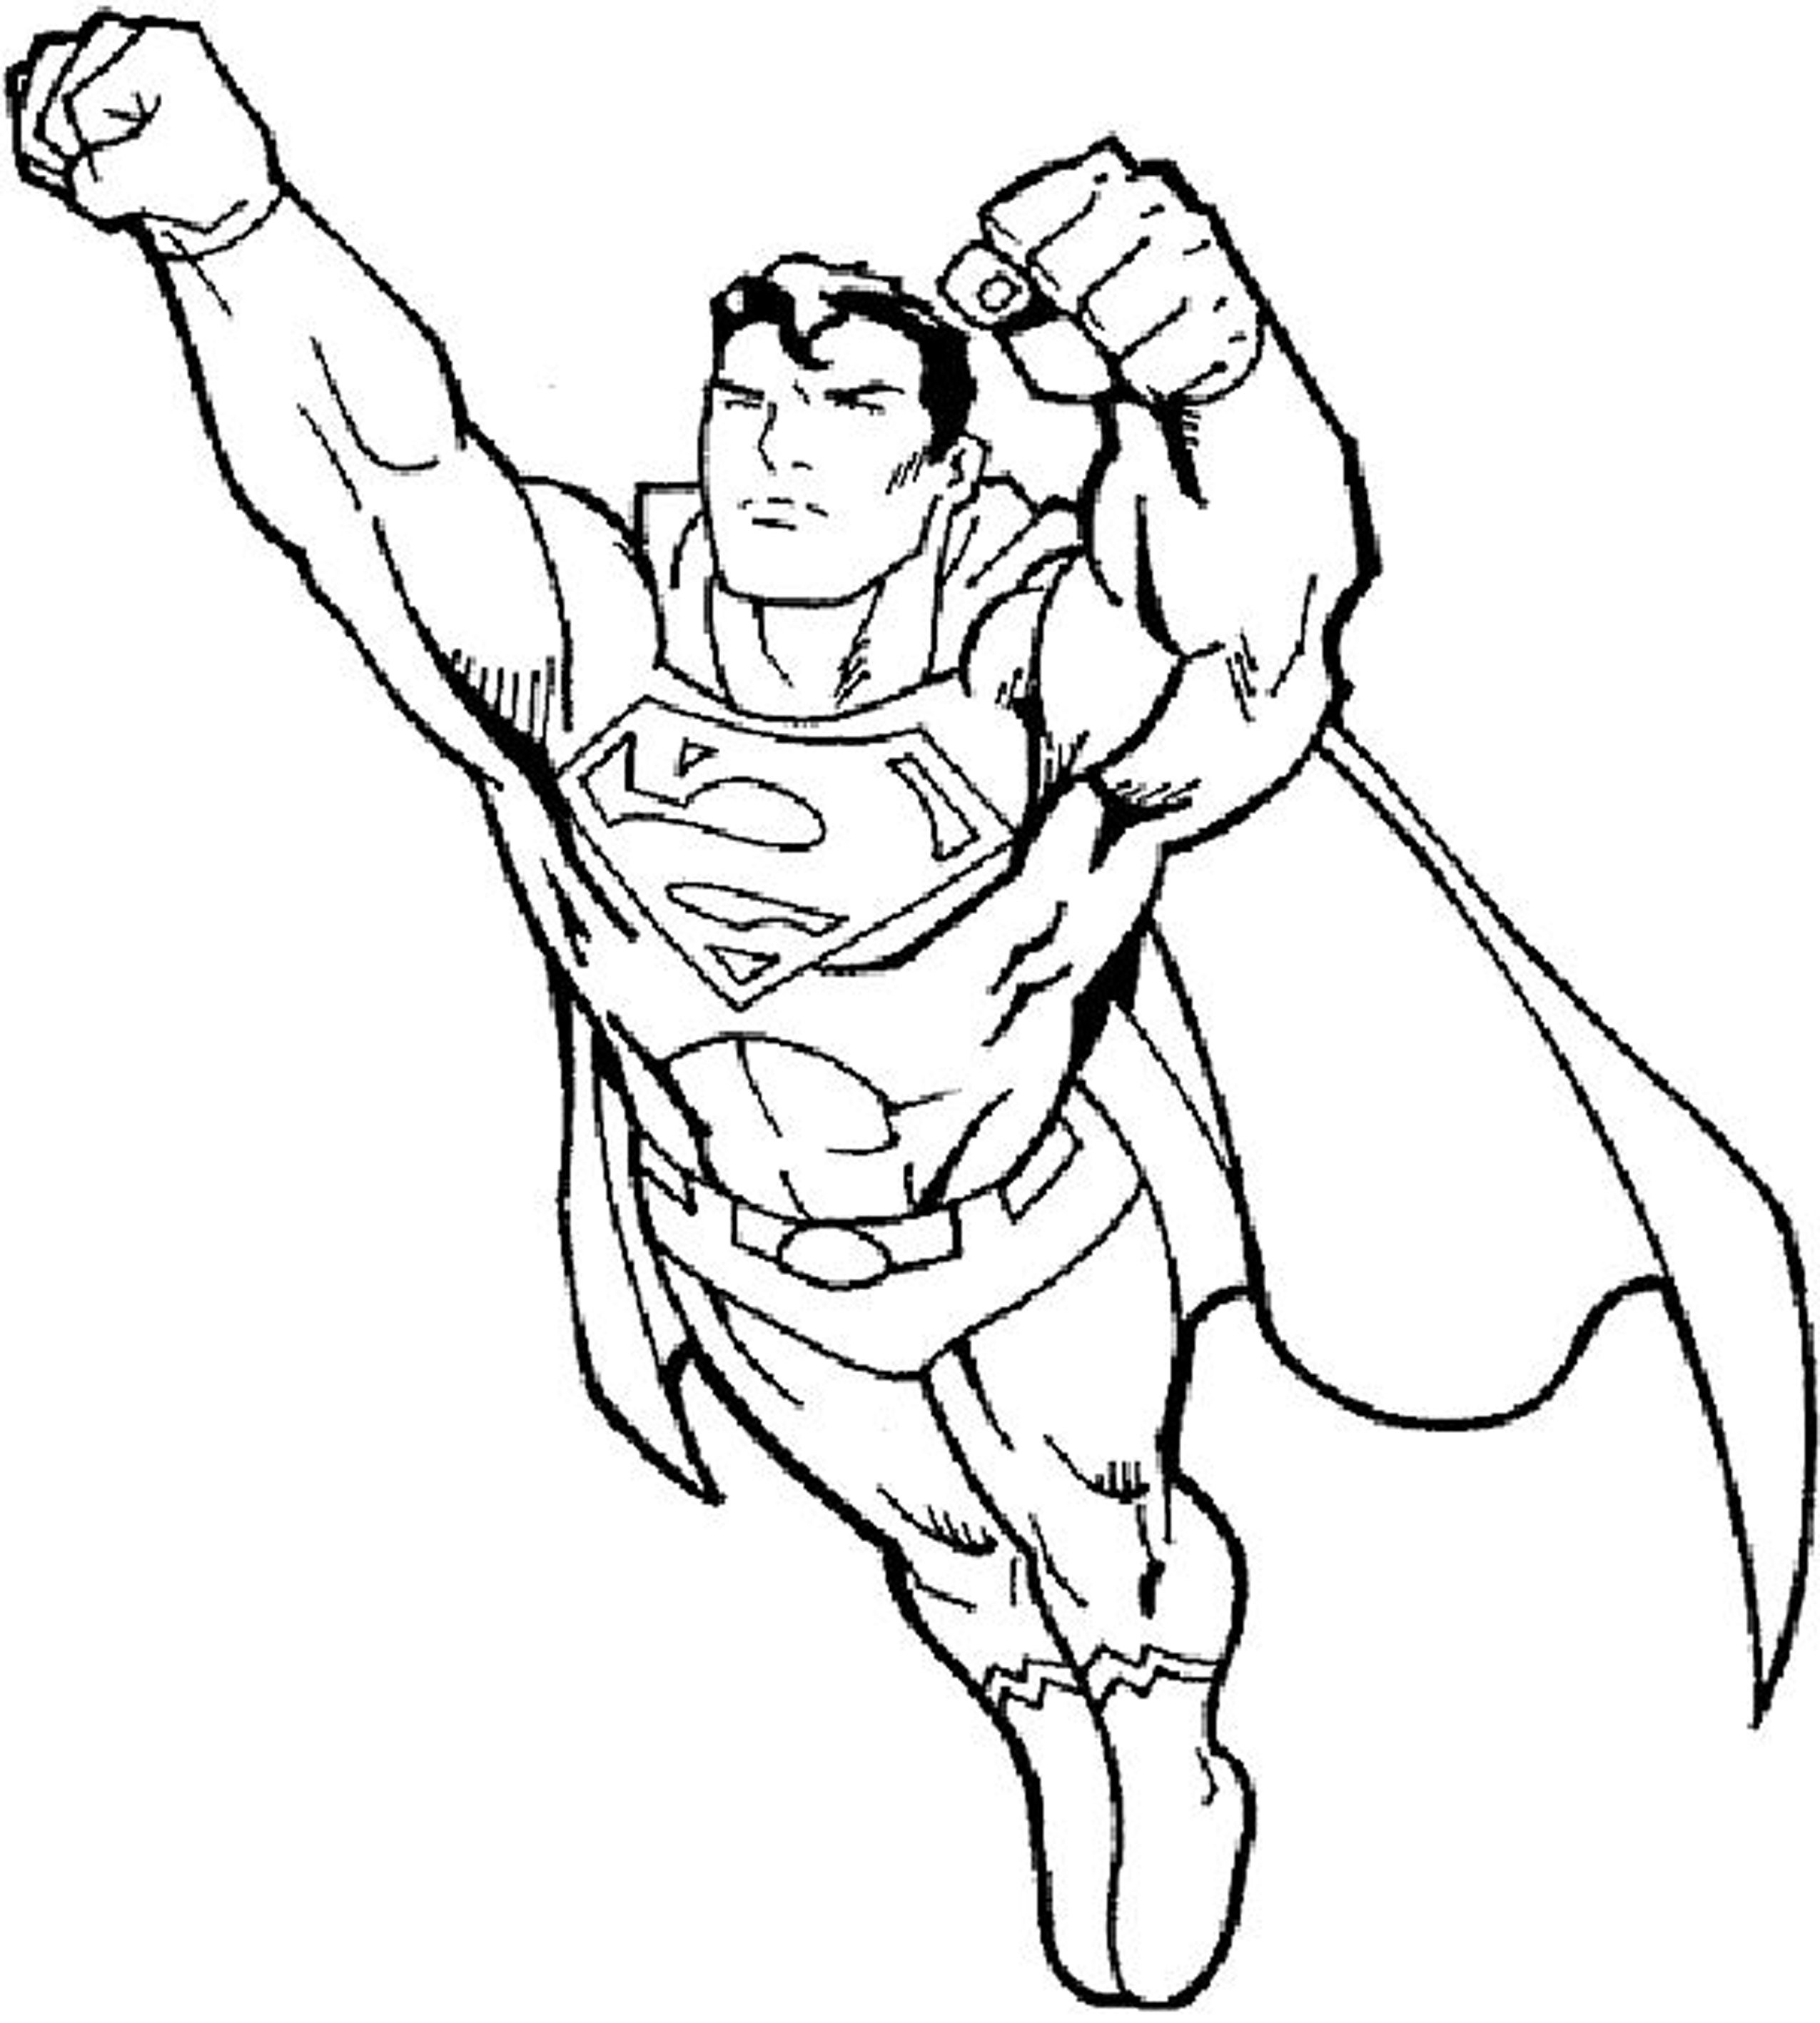 superman cartoon pictures for colouring superman coloring pages break printable free cartoon colouring pictures superman for